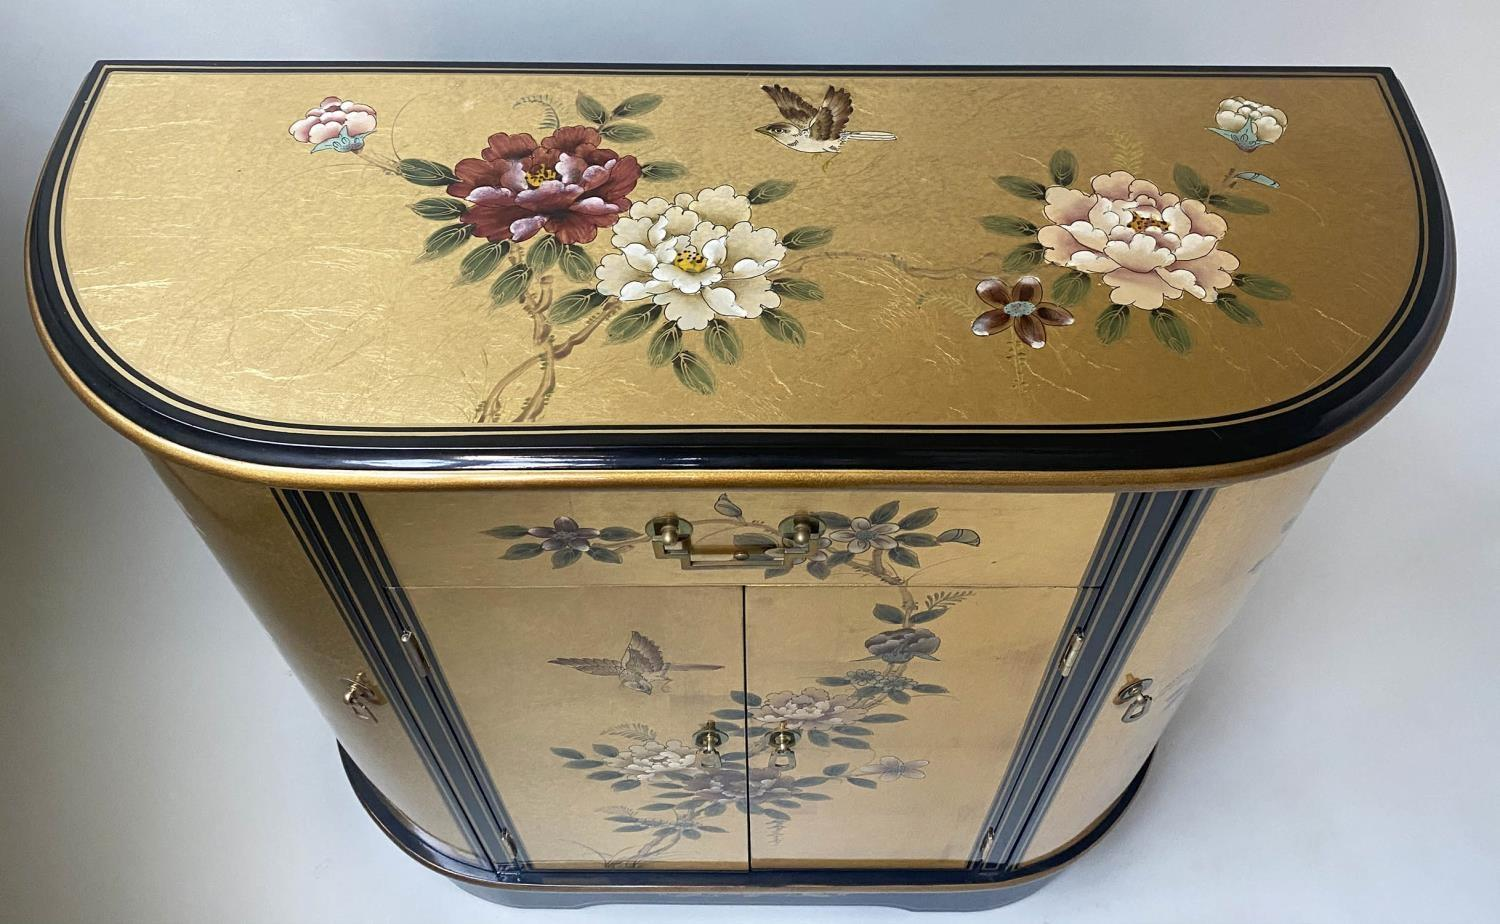 SIDE CABINET, 20th century Chinese D outline gilt lacquer and flower decorated with drawer and - Image 9 of 9